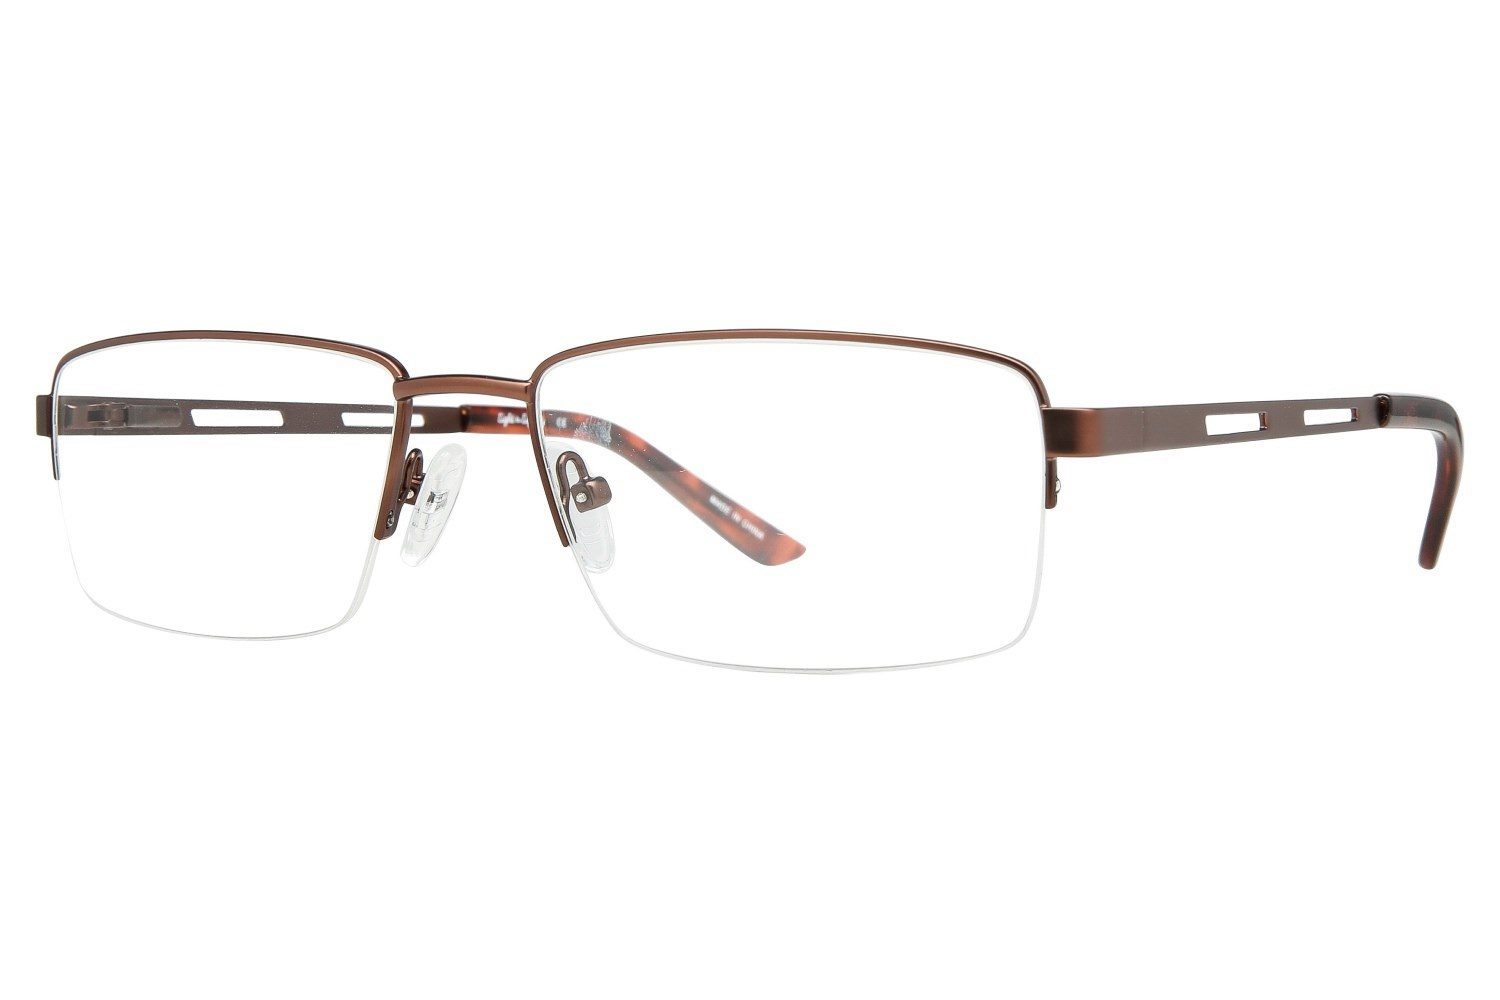 a01b52b32d  39.95 More Details · Eight To Eighty Eyewear New York Eyeglasses Frames